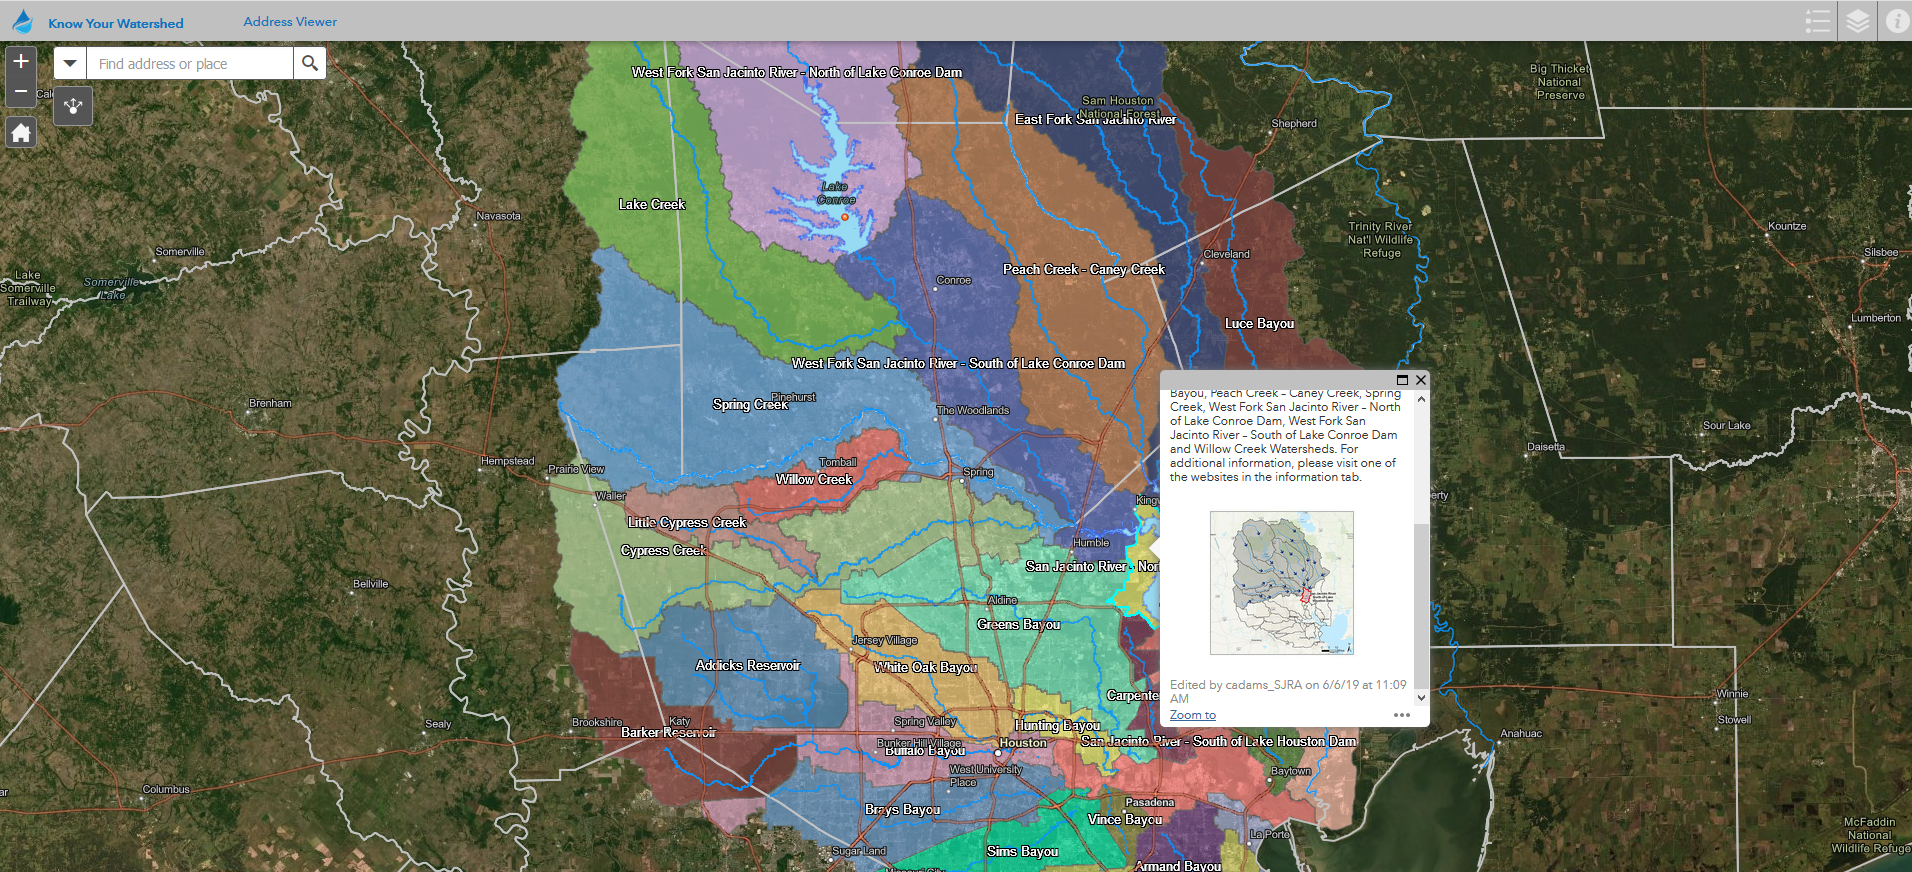 Know Your Watershed Address Viewer